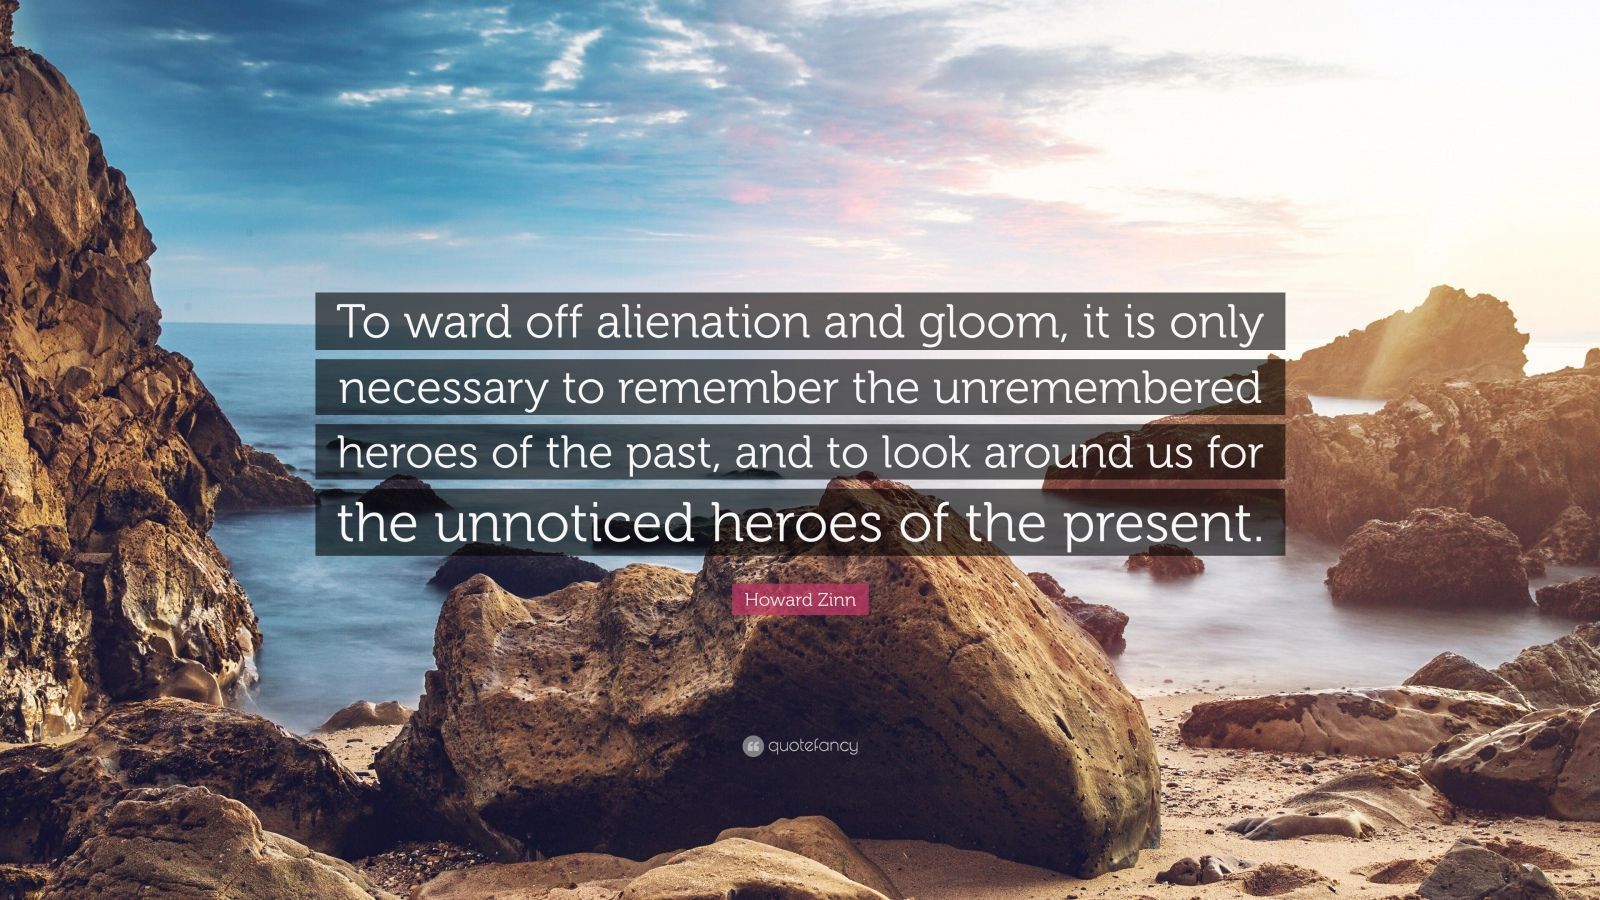 "Howard Zinn Quote: ""To ward off alienation and gloom, it is only necessary to remember the unremembered heroes of the past, and to look around us for the unnoticed heroes of the present."""